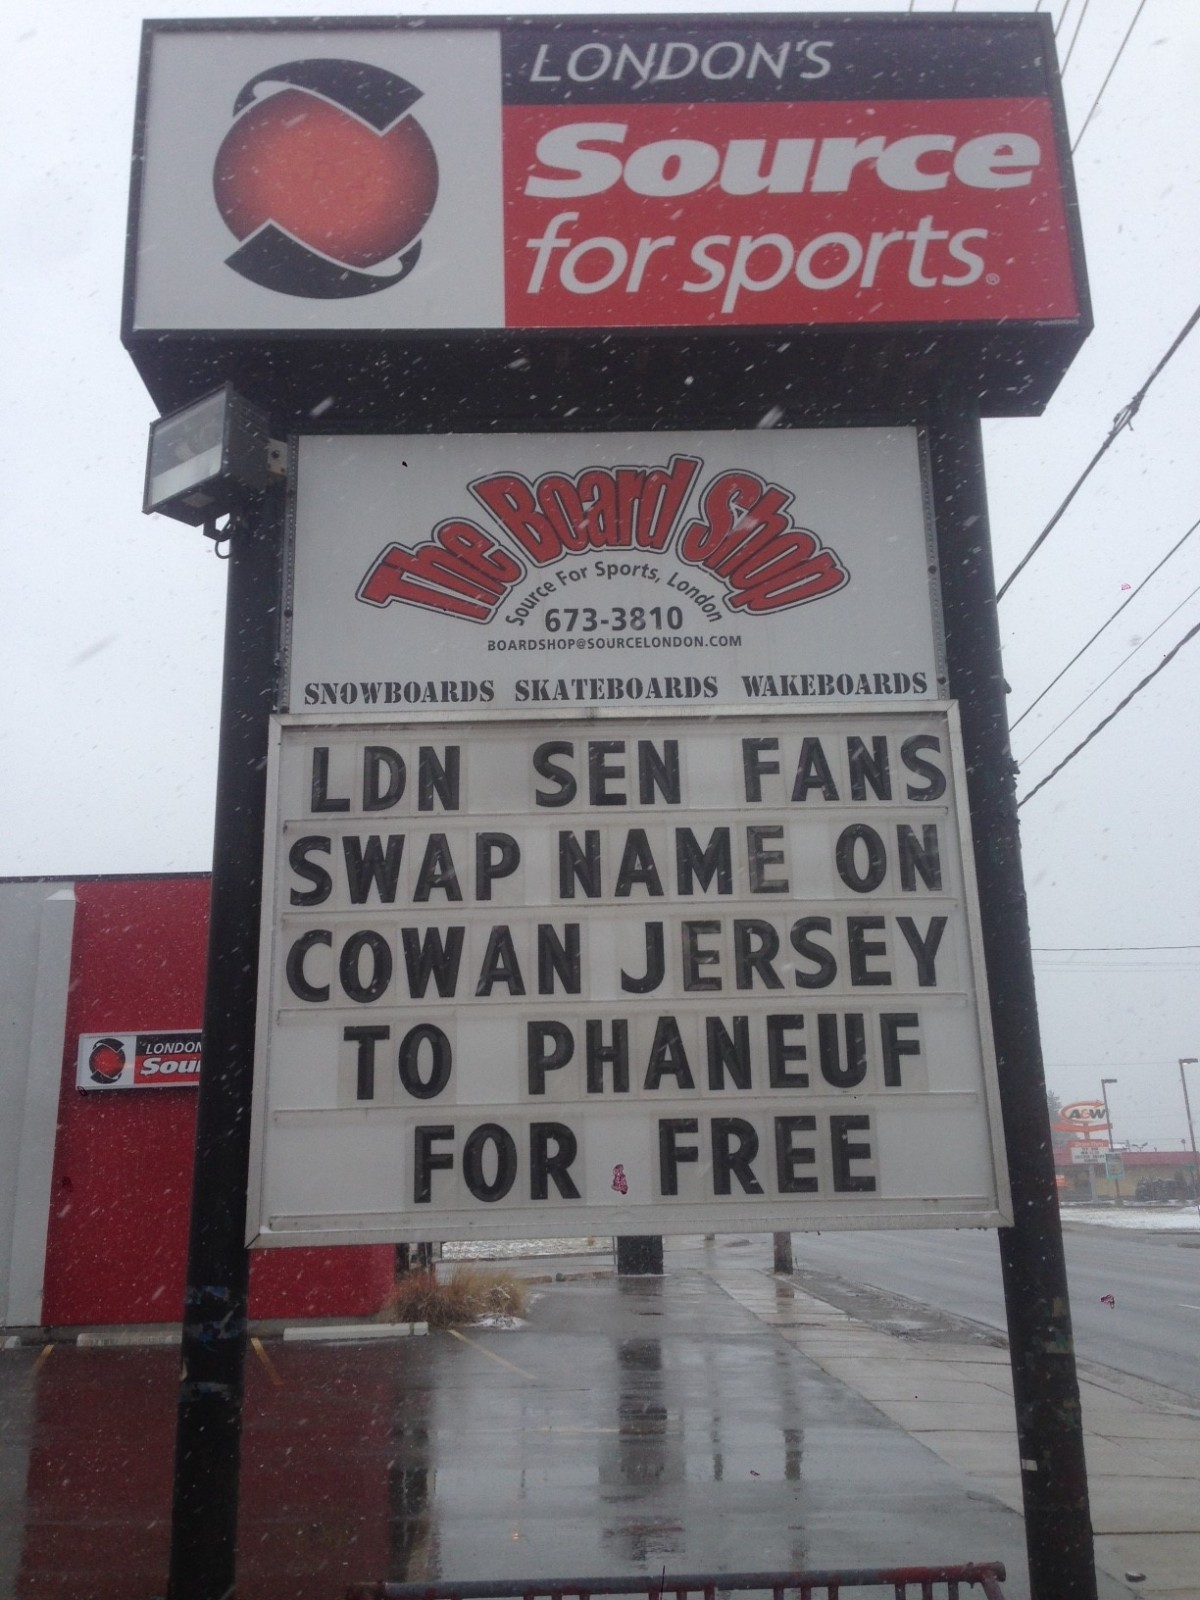 Sens Fans - get your Phaneuf on!